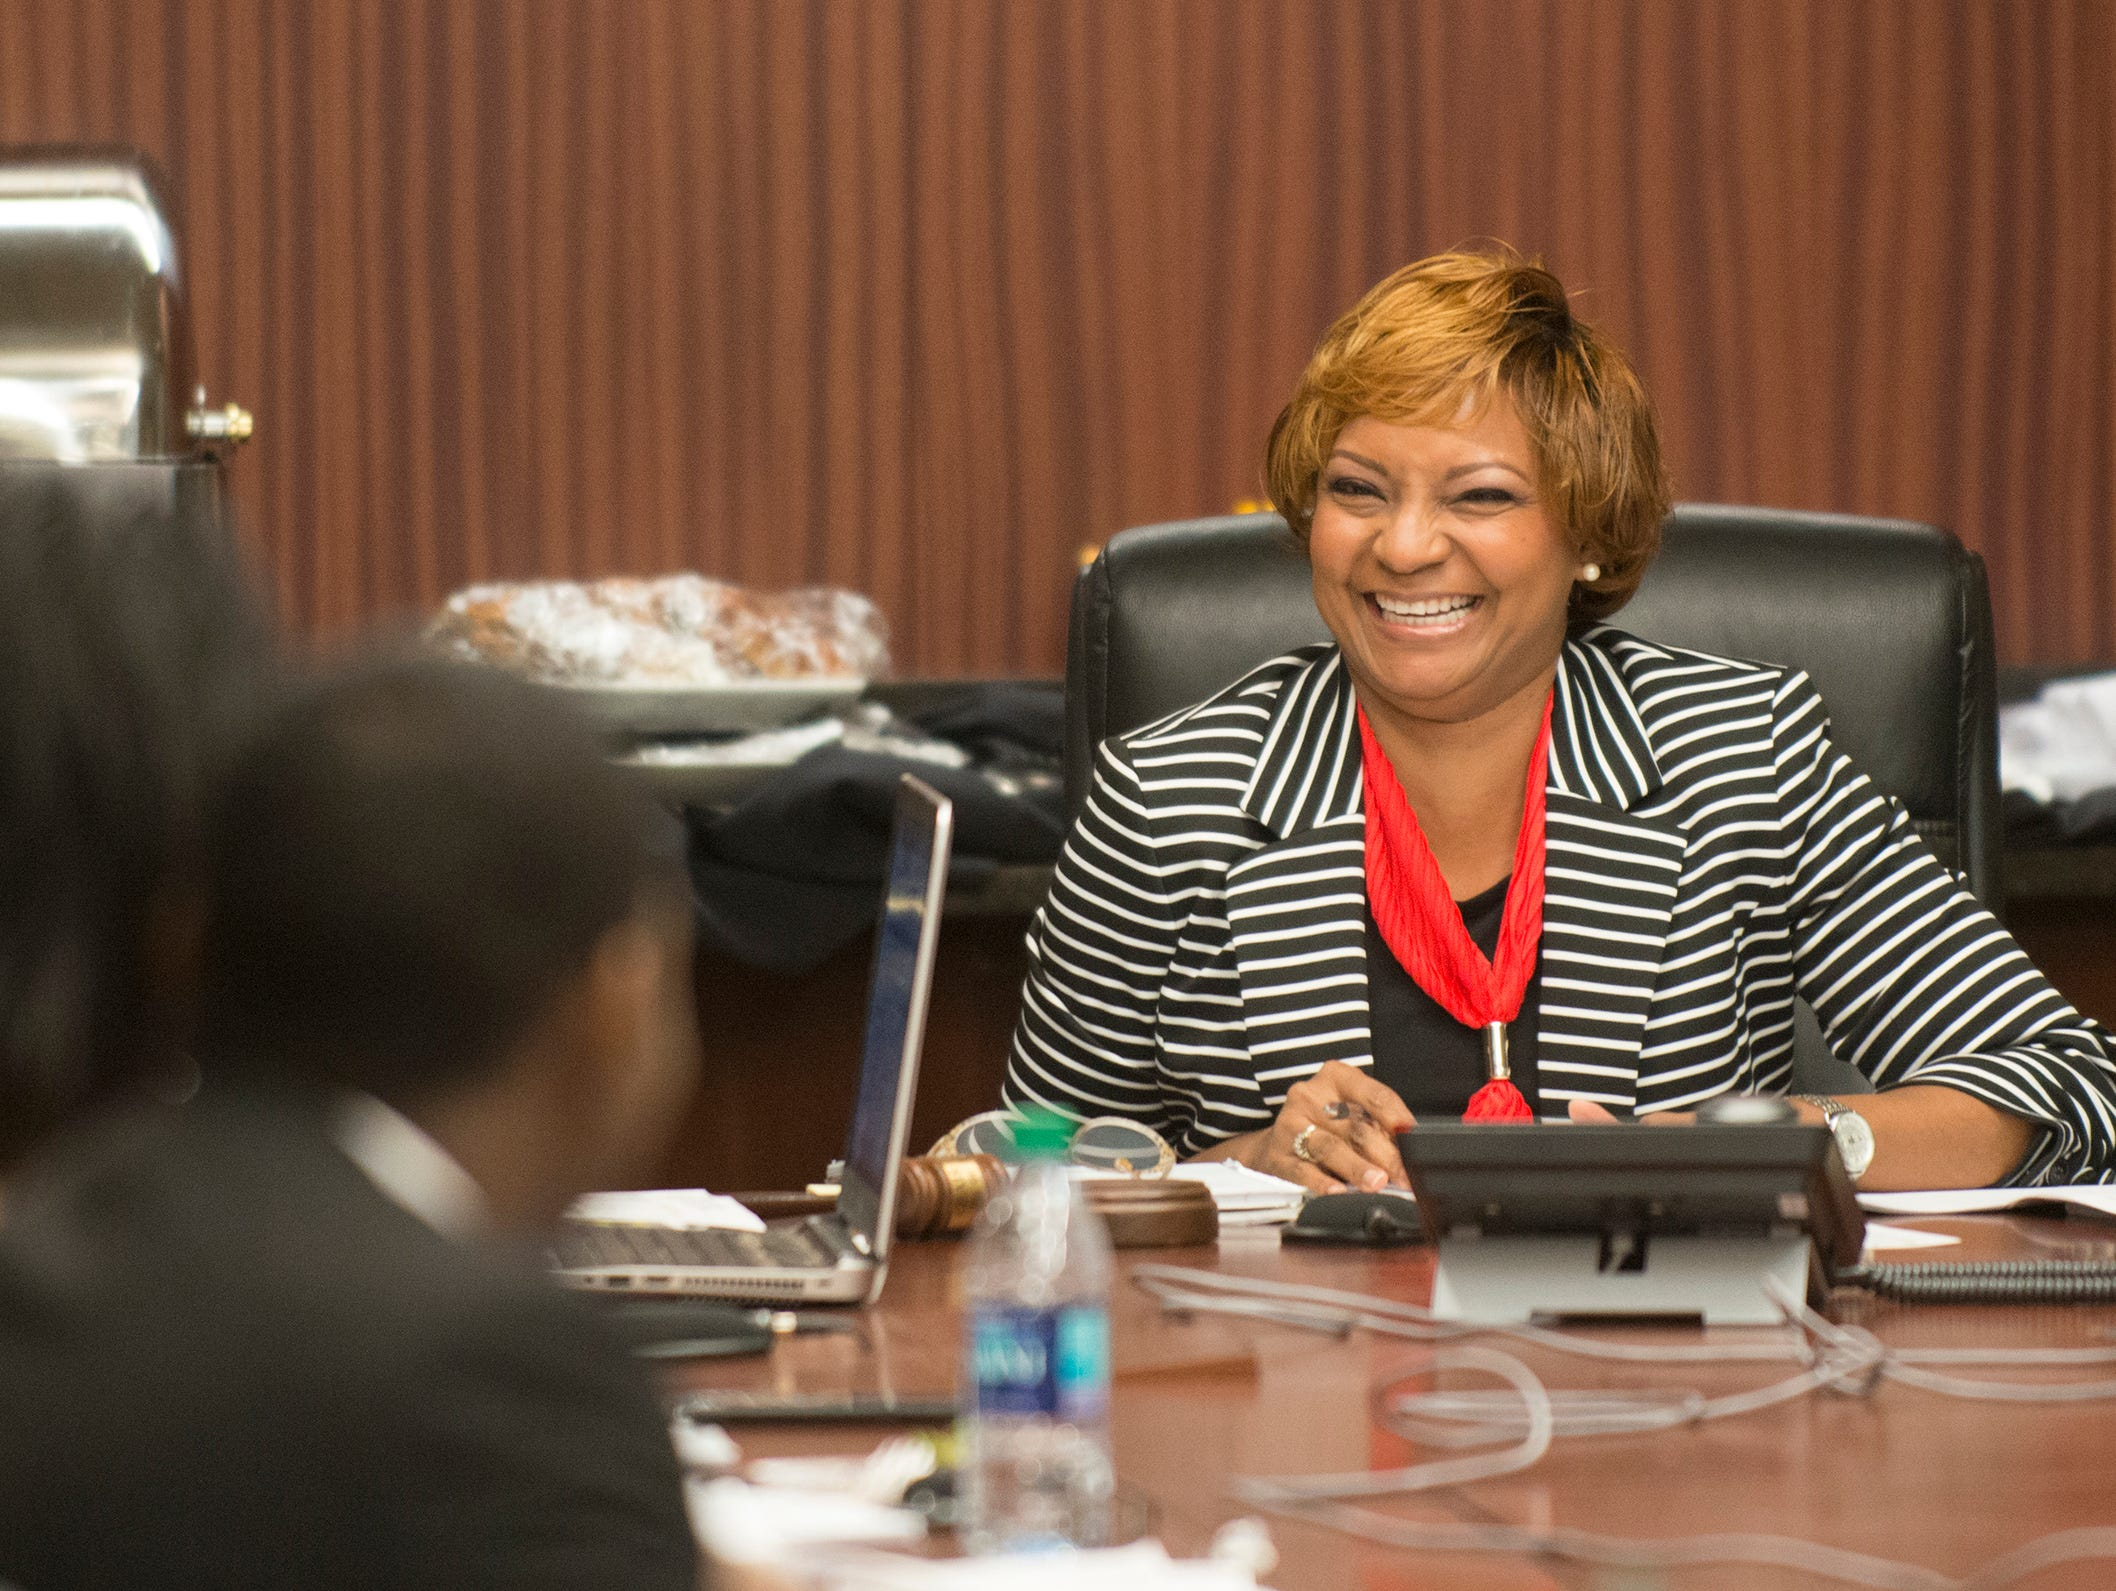 Angela McKenzie, ASU Board vice chair, laughs during a committee meeting on Wednesday, April 12, 2017, in Montgomery, Ala.